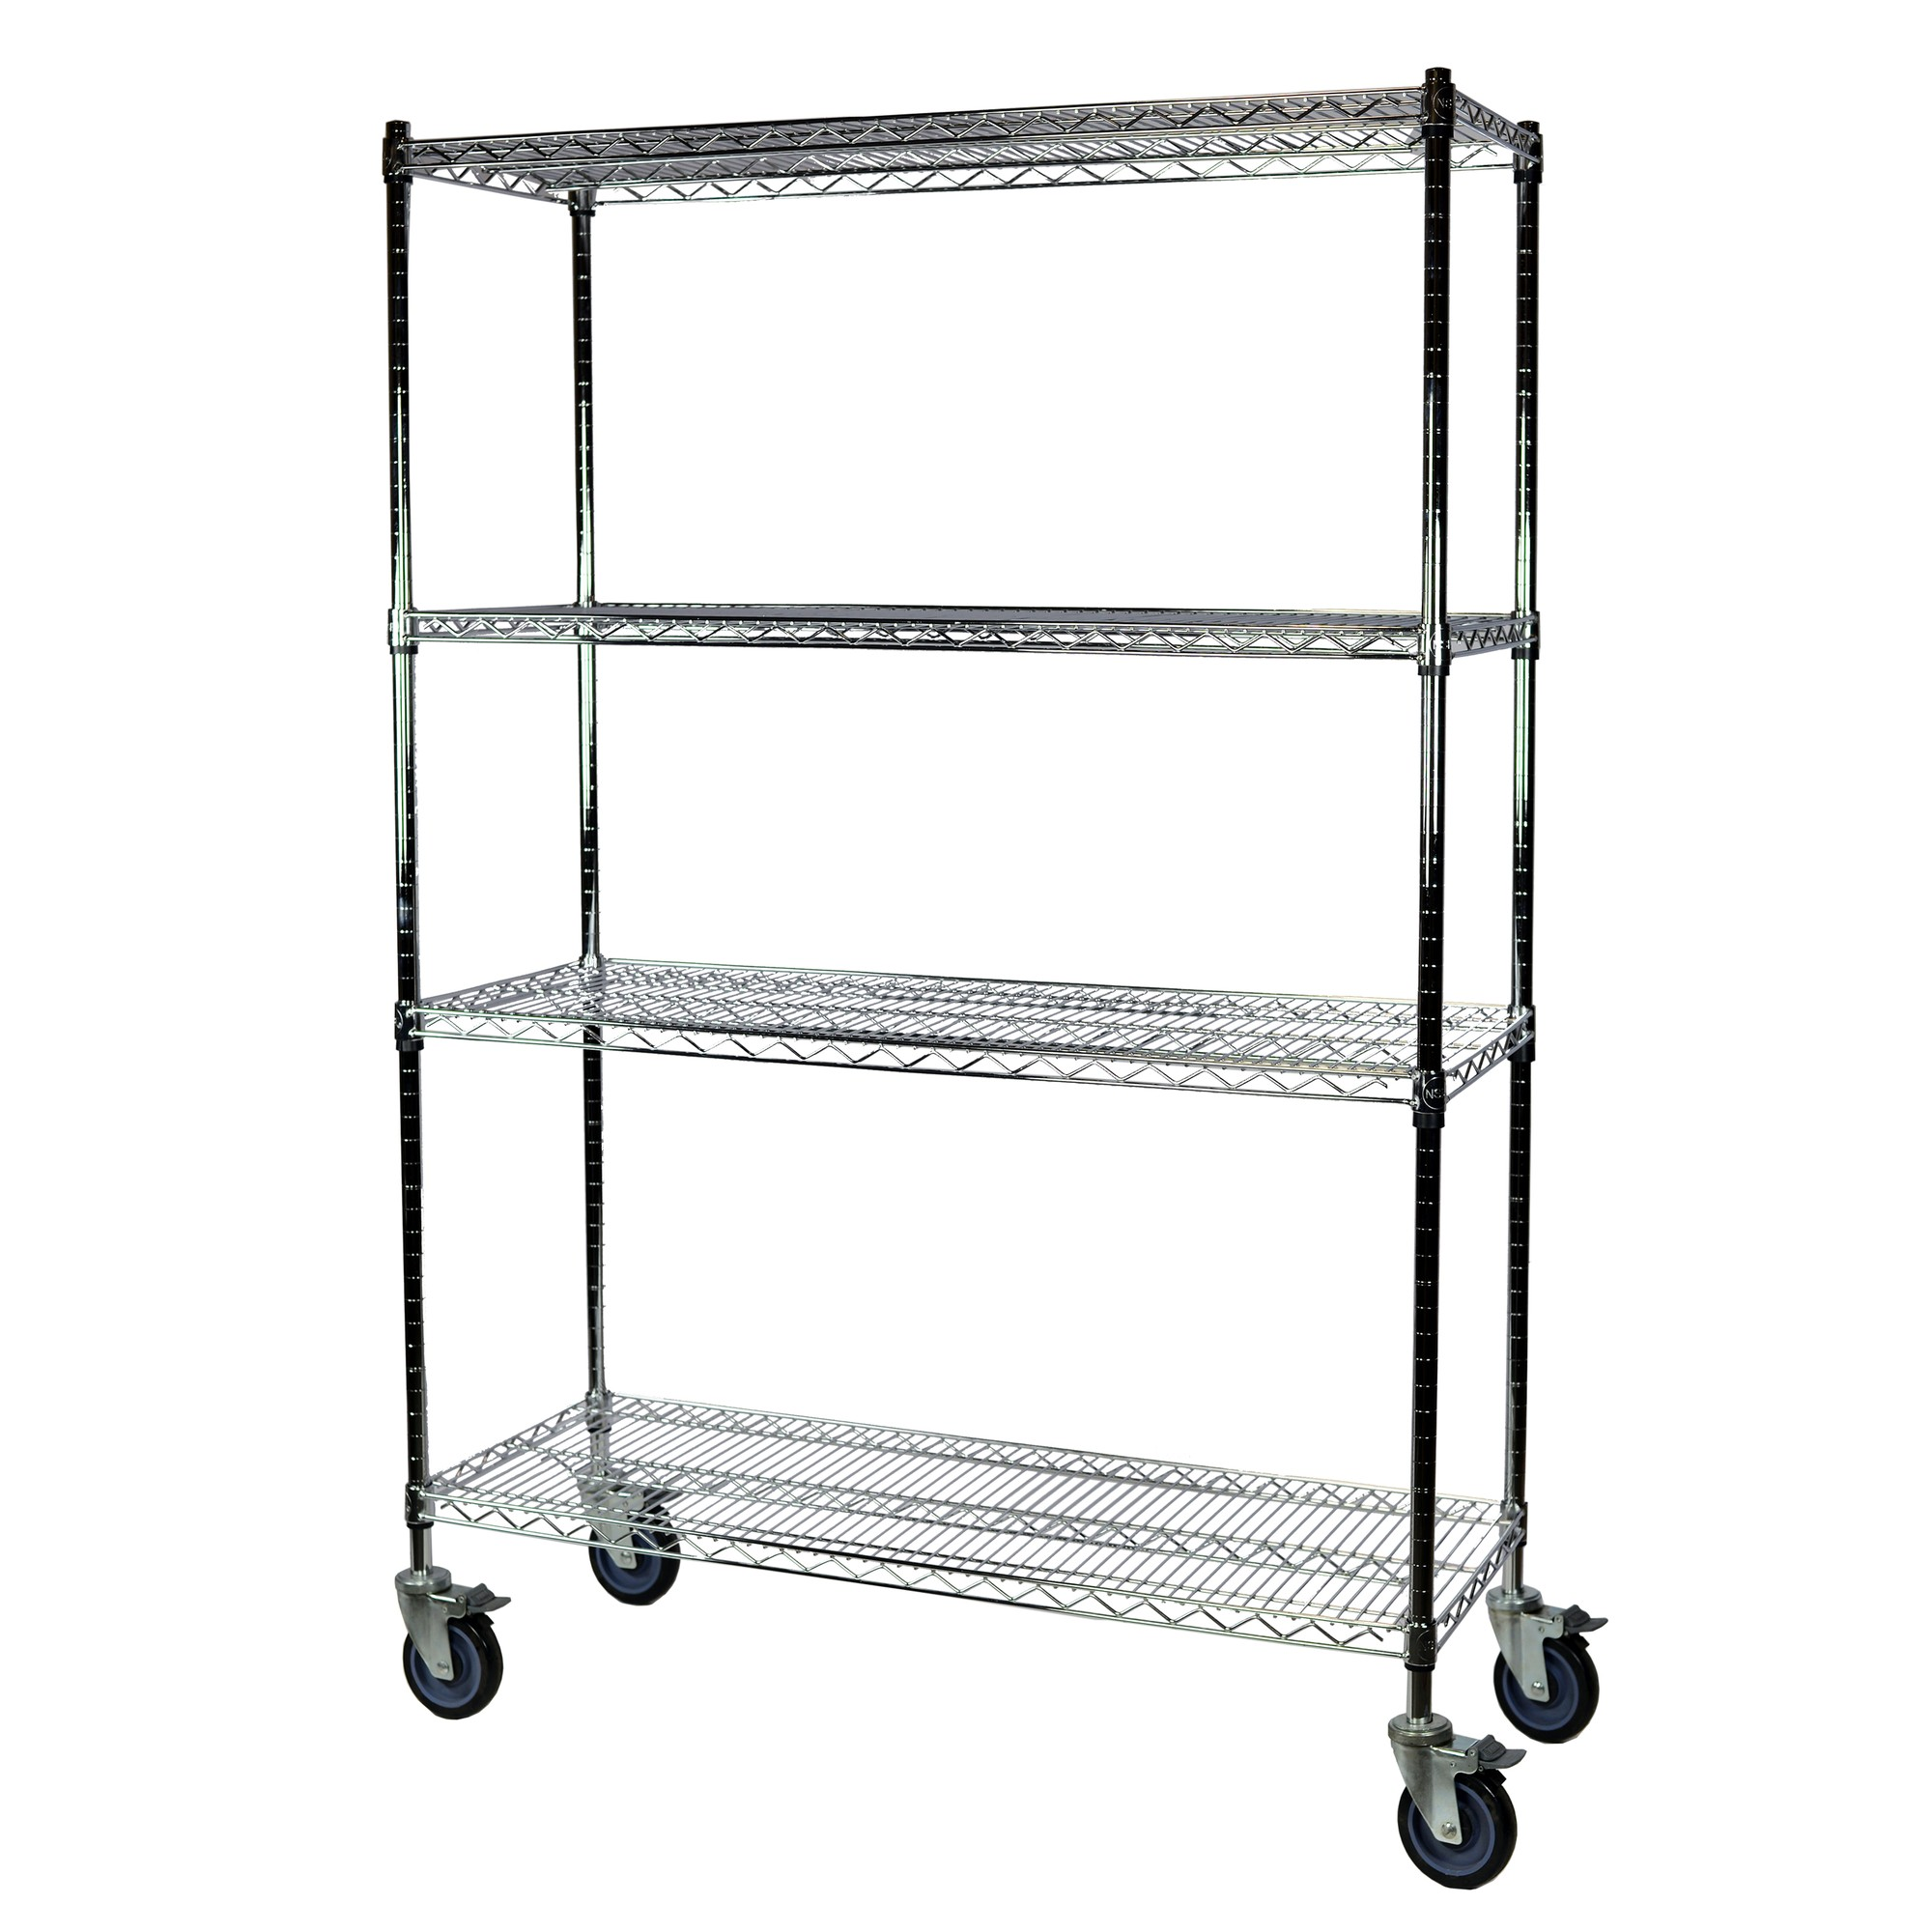 Storage Max Chrome Wire Shelving with Wheels, 24 x 36 x 74, 4 Shelves